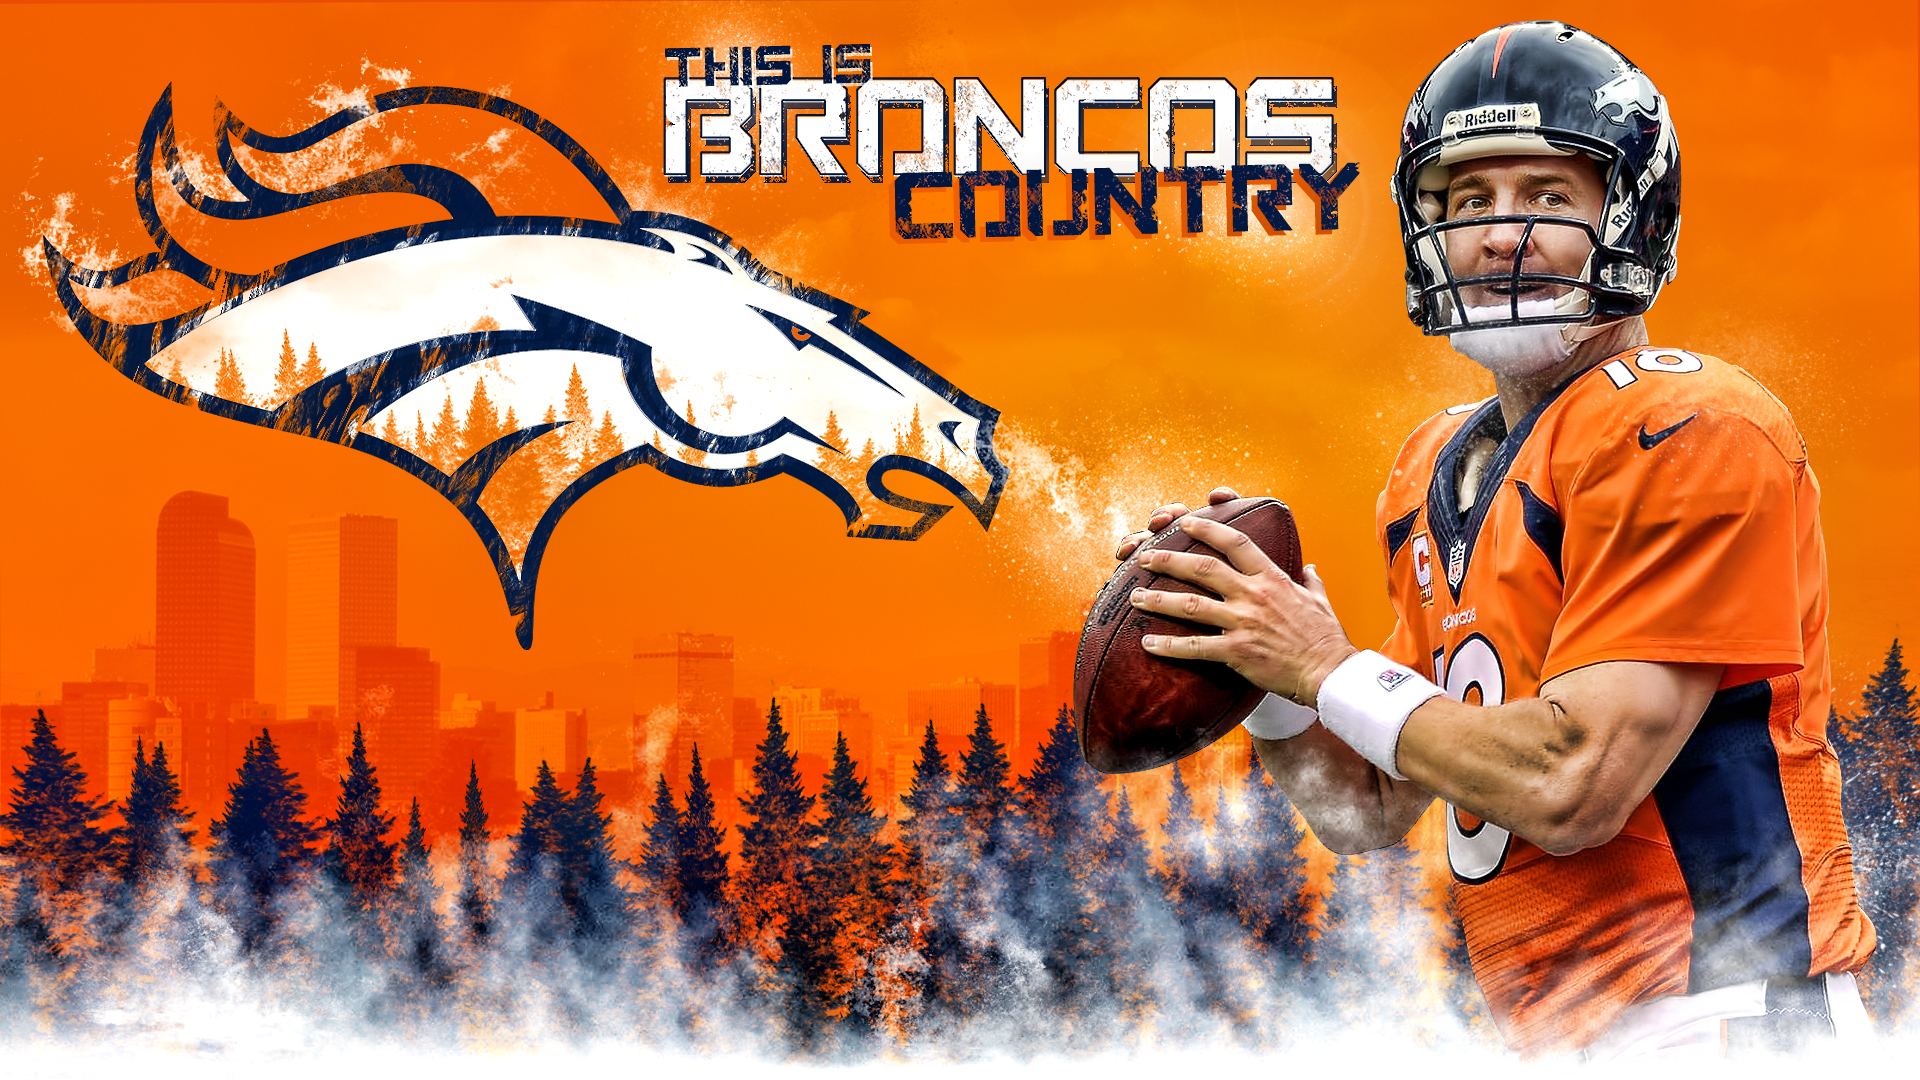 denver broncos peyton manning broncos country wall by 1920x1080